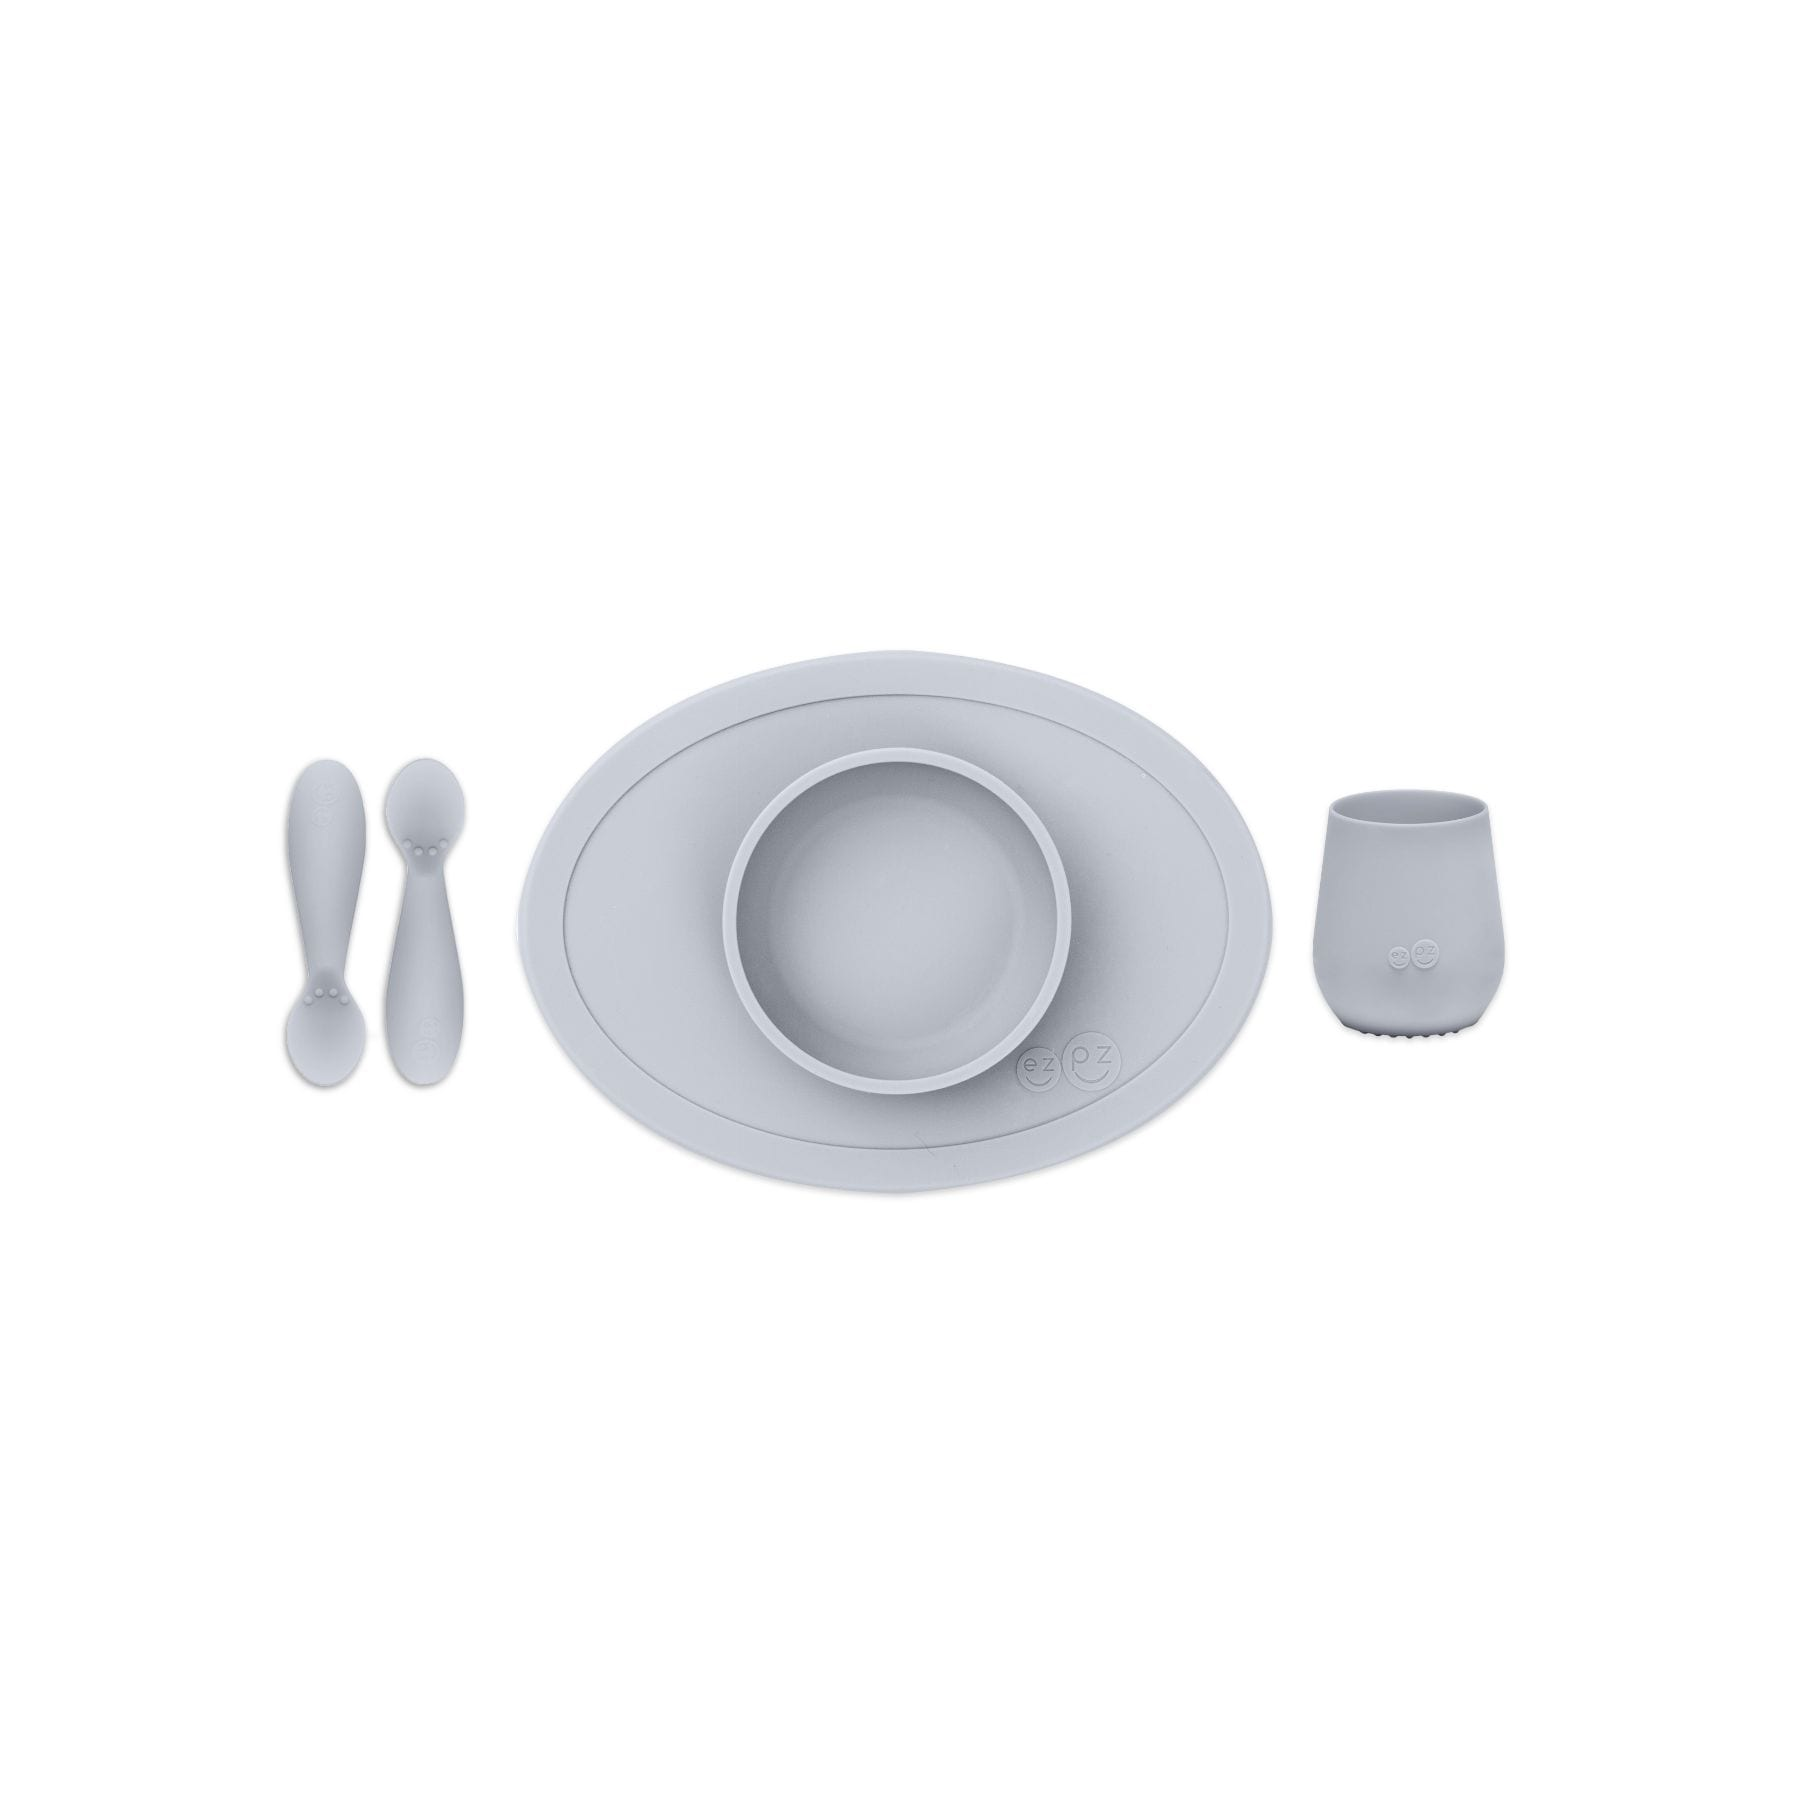 EZPZ Tiny First Food Set - Pewter